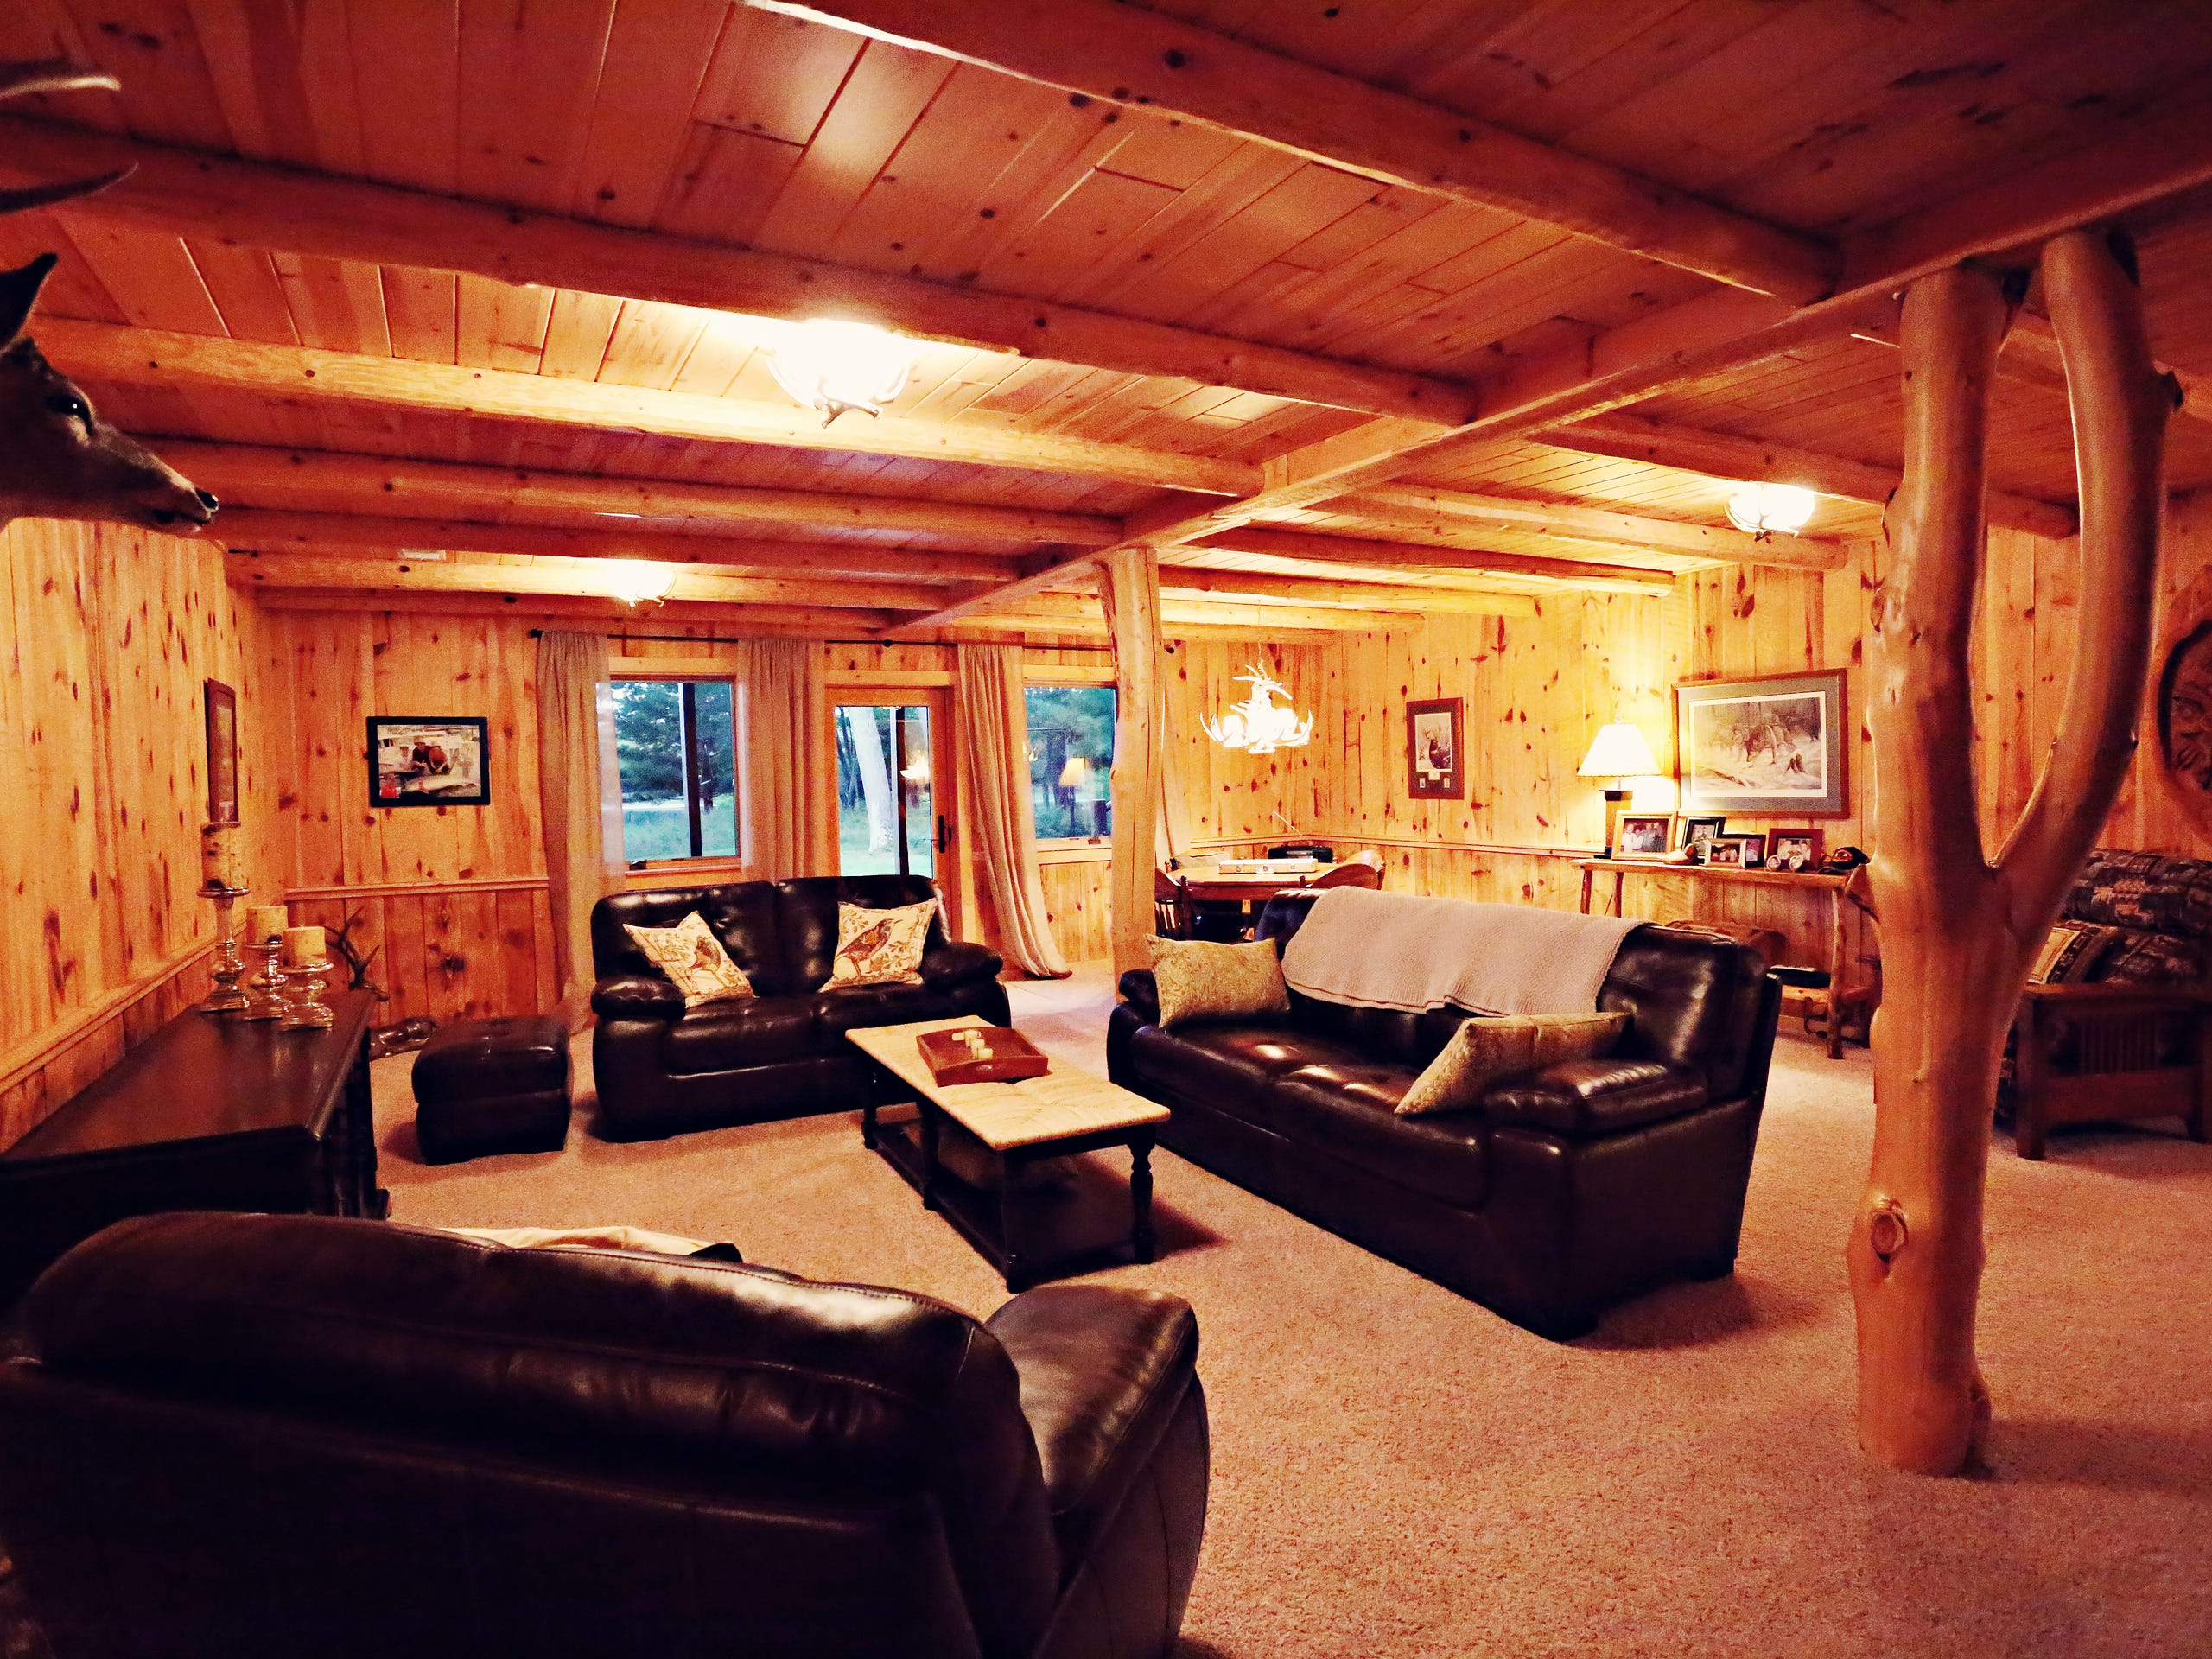 Known as the Double Eagle Ranch, the property covers 2,280 acres and located on Sargent Road near where Maple Valley and Round Lake roads meet in Gladwin. Gladwin, in Roscommon County, is about 160 miles northwest of Detroit.